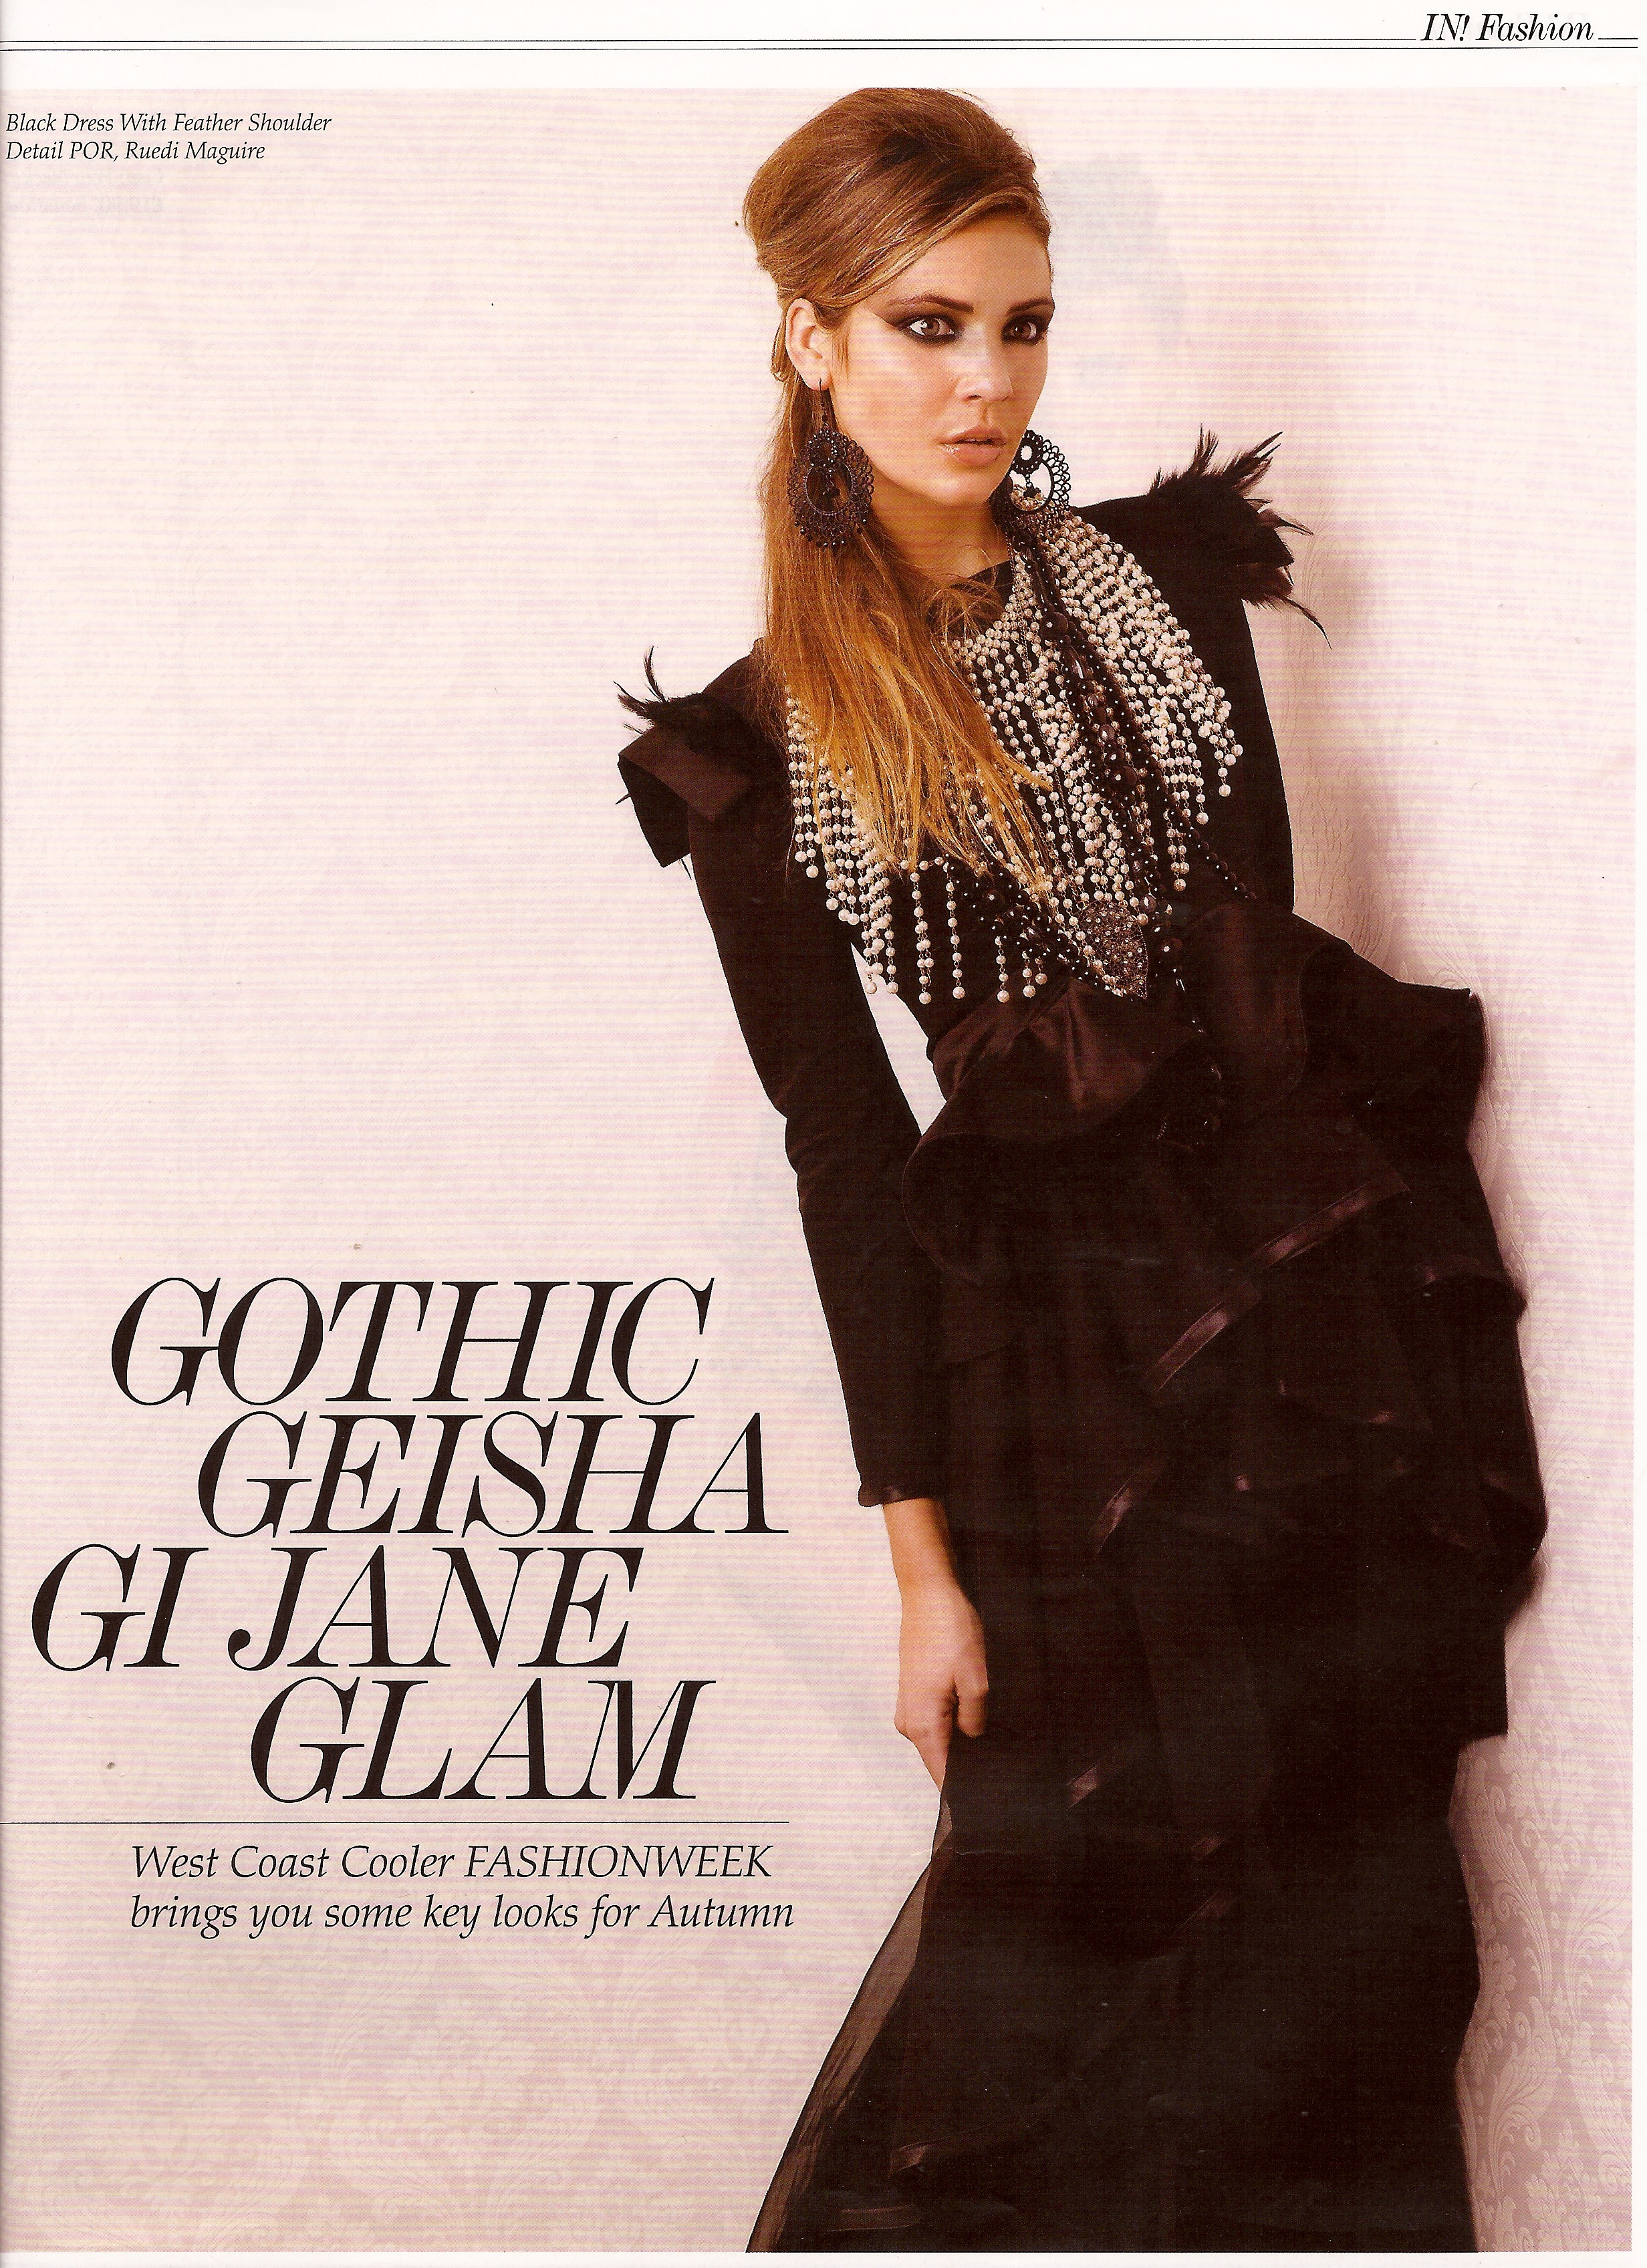 IN Magazine, Fashion Week Looks for Autumn 2012, Dress by RUEDI